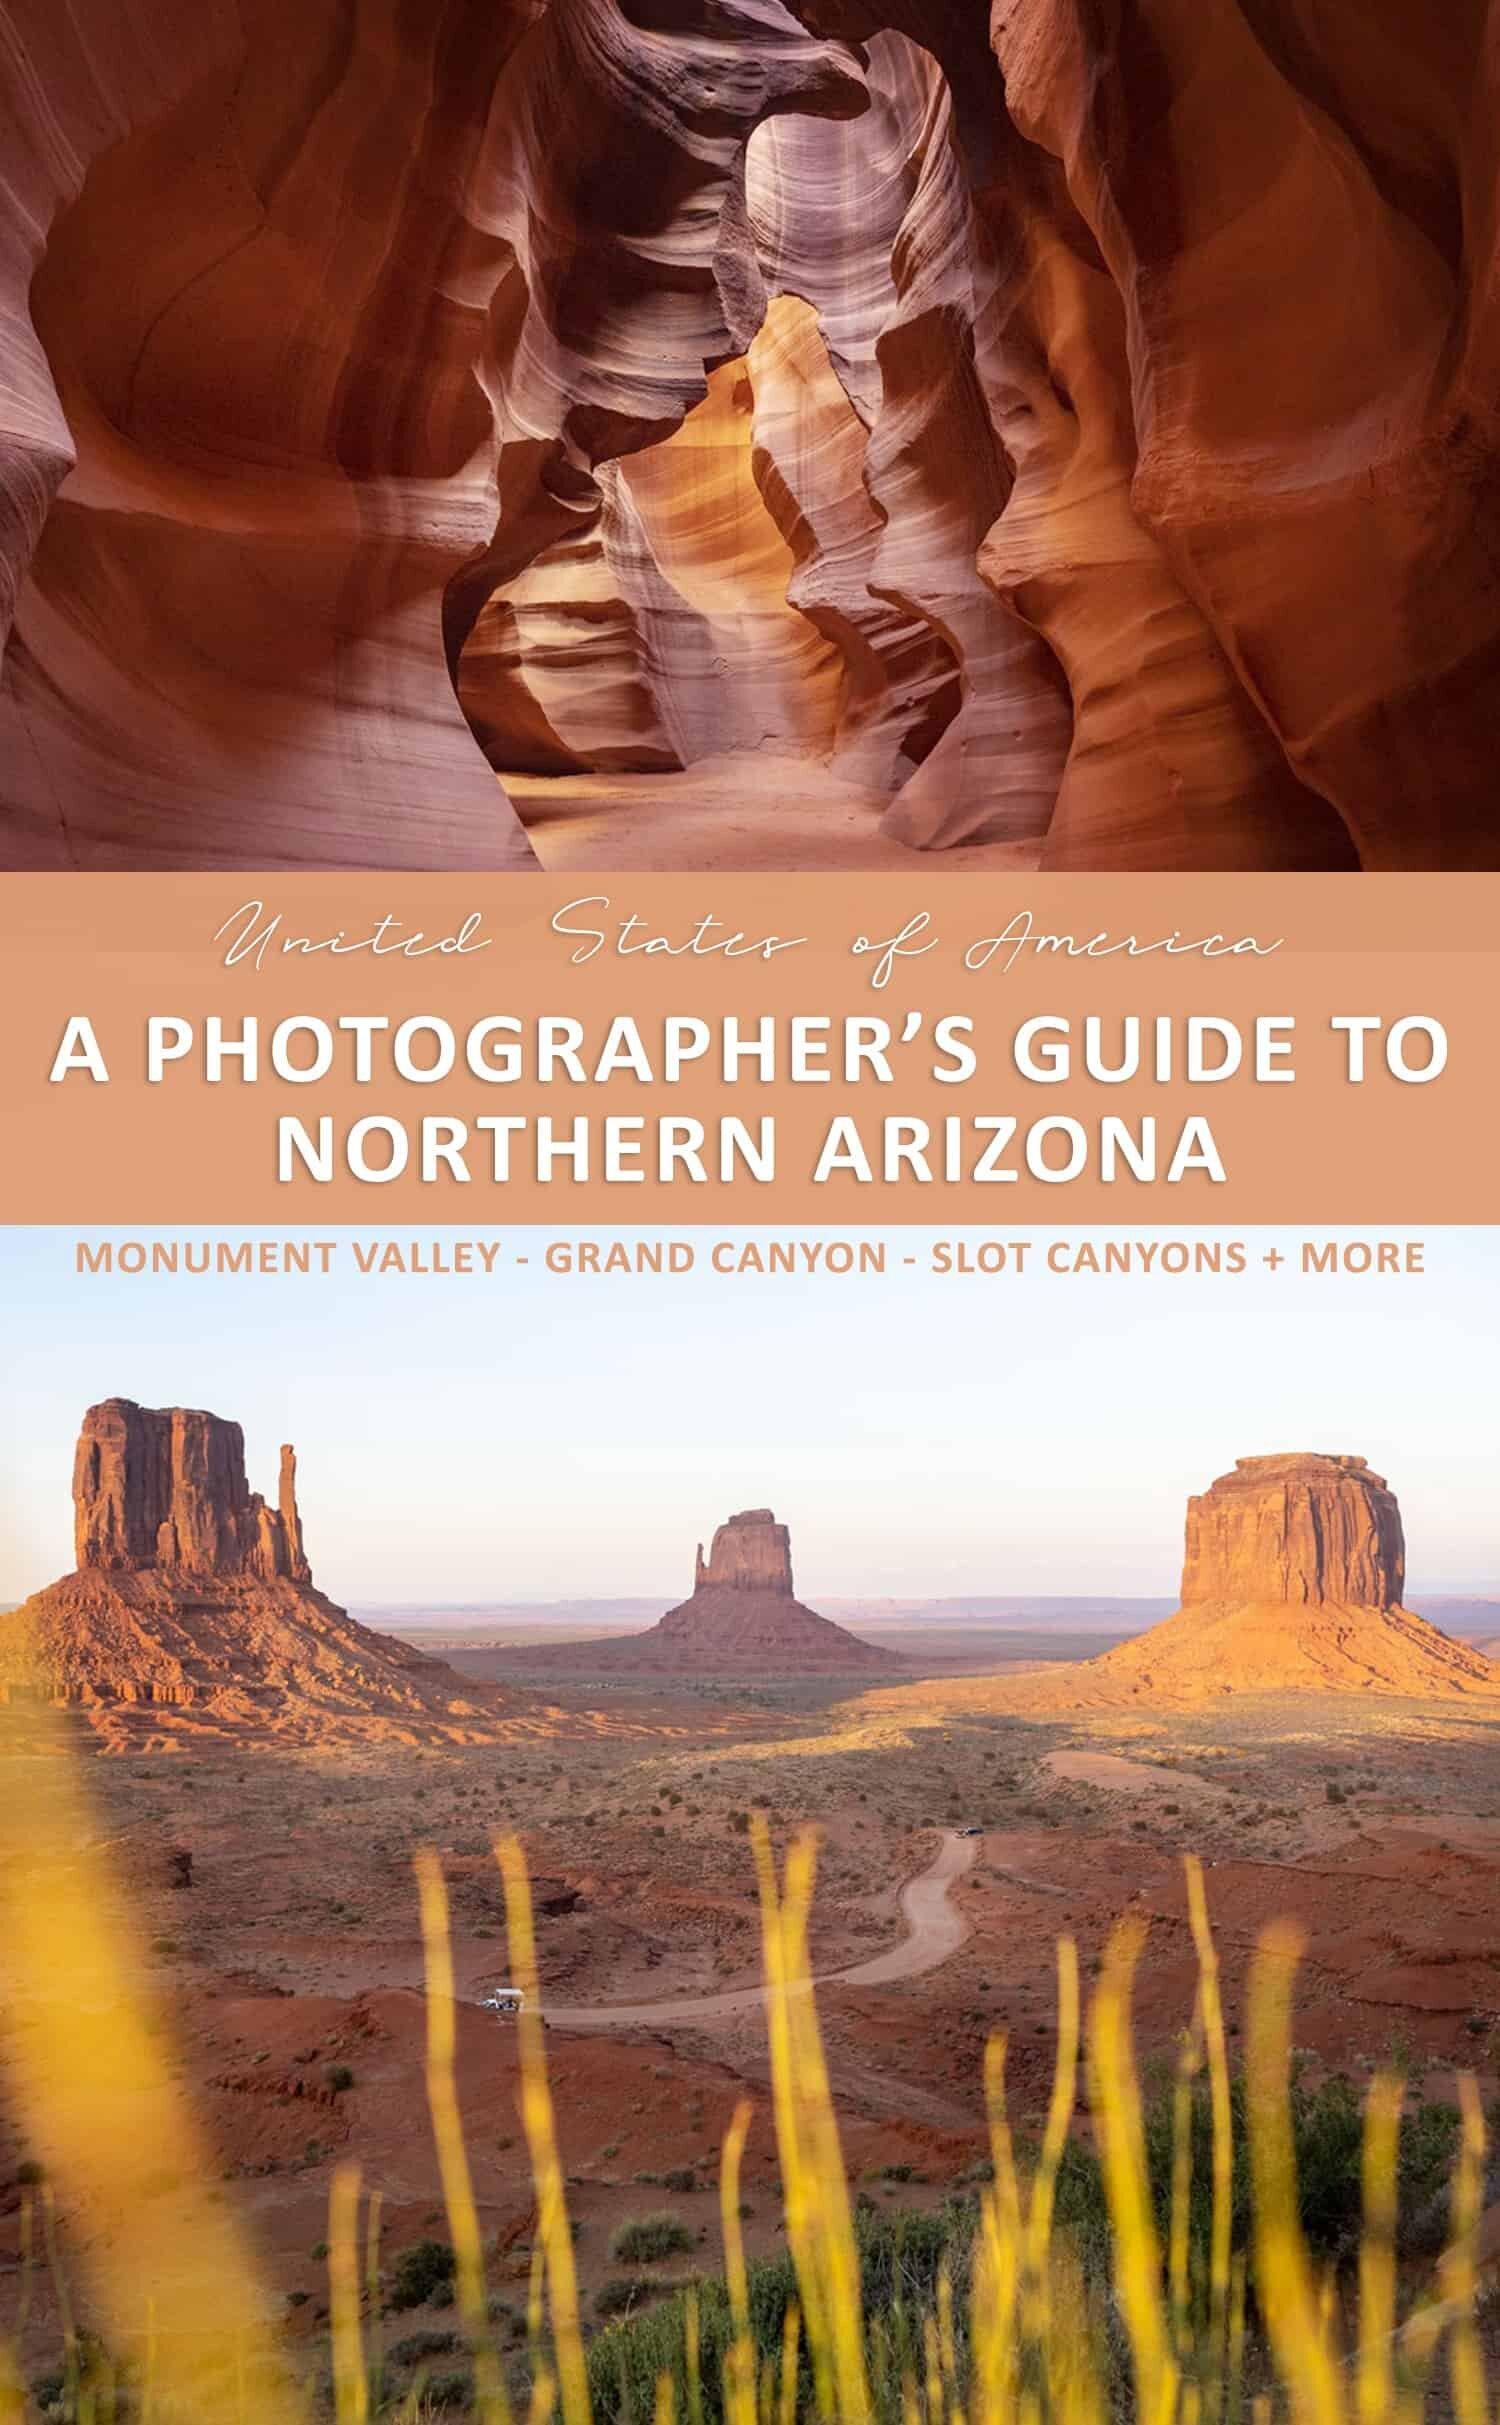 Arizona Photography Locations - A Guide to photographing the Grand Canyon, Monument Valley and more